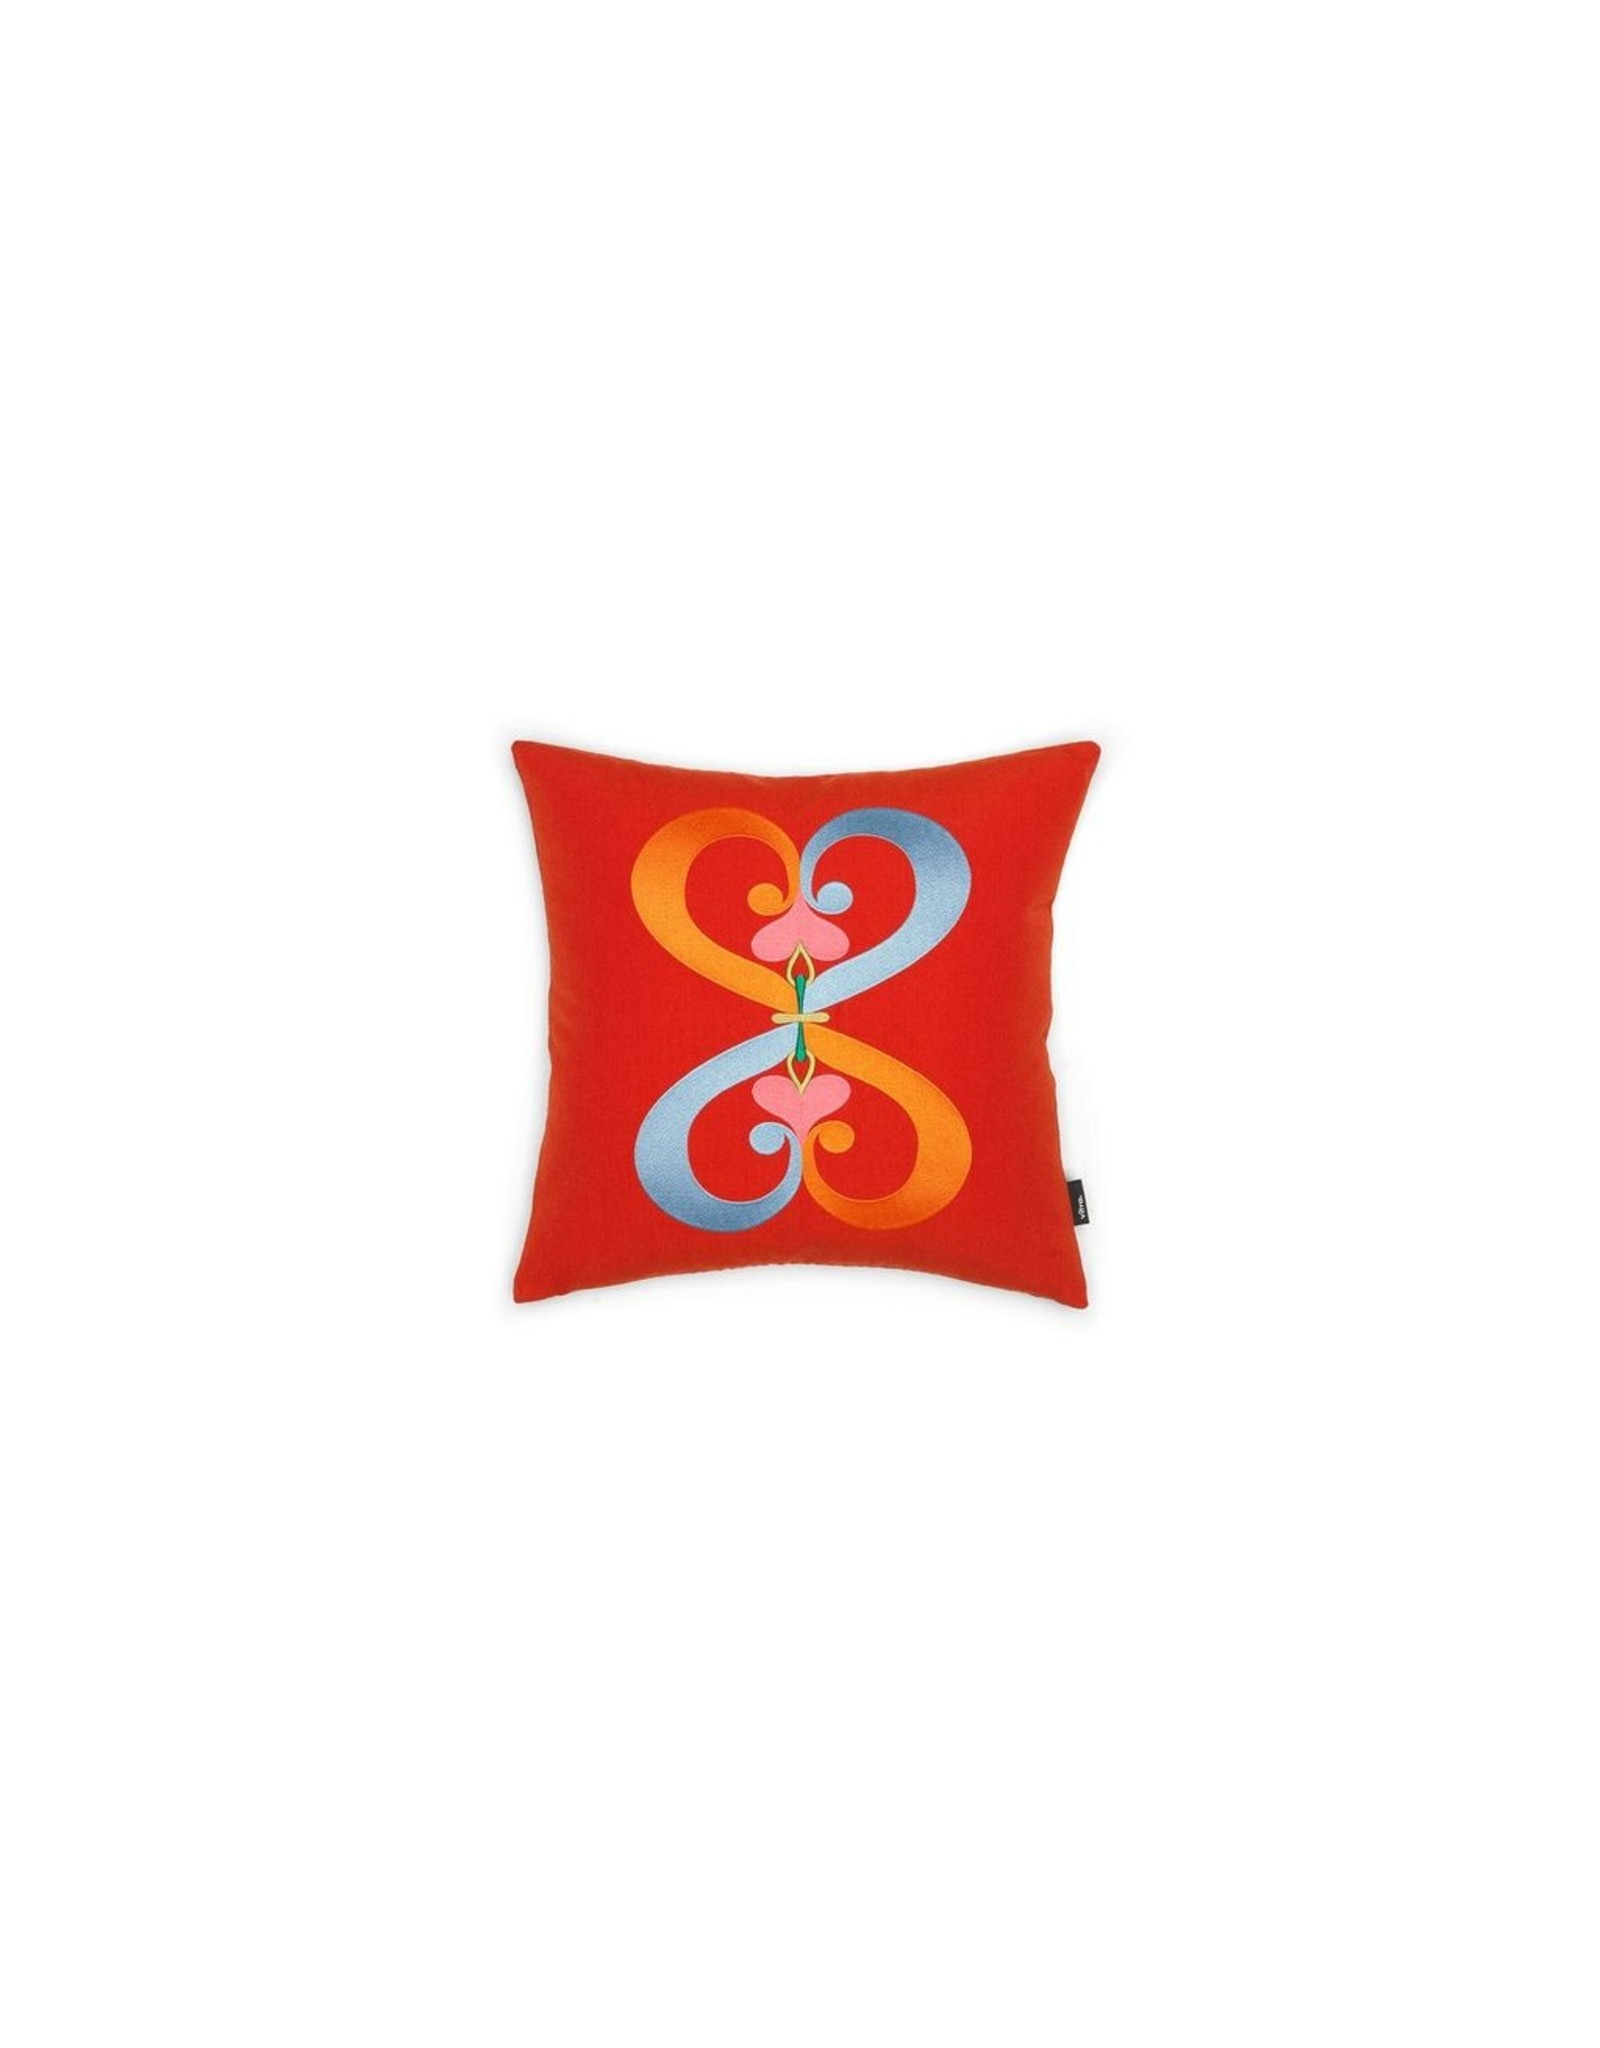 VITRA EMBROIDERED PILLOWS DOUBLE HEART